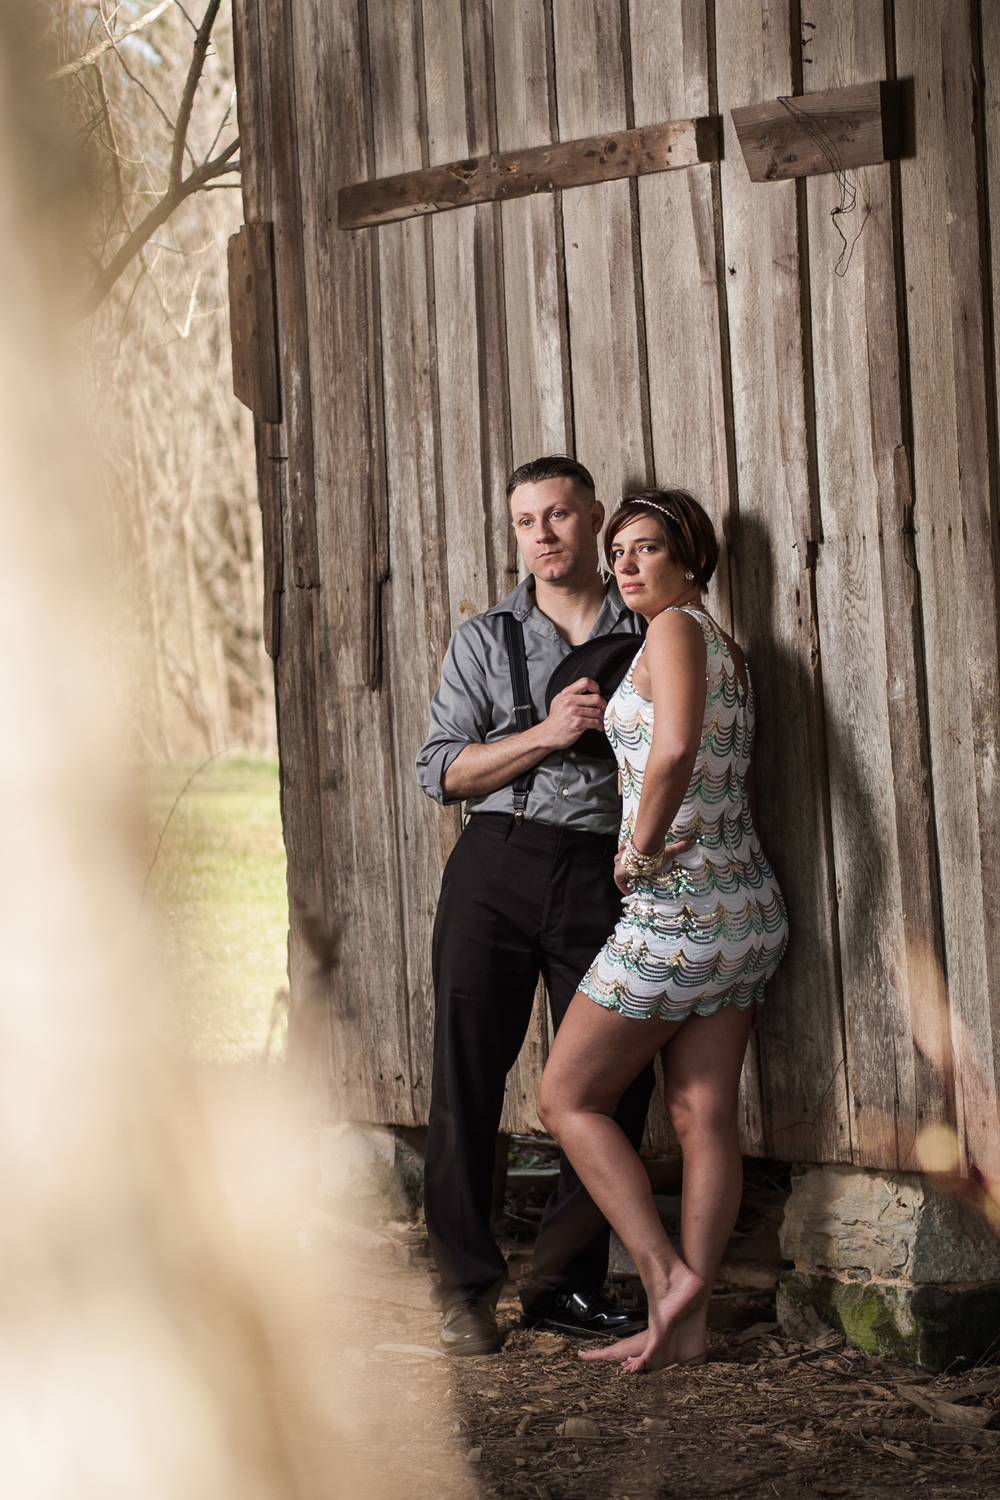 Vintage engagement session Blacksburg Virginia Portrait and Wedding Photographer Bent-Lee Carr